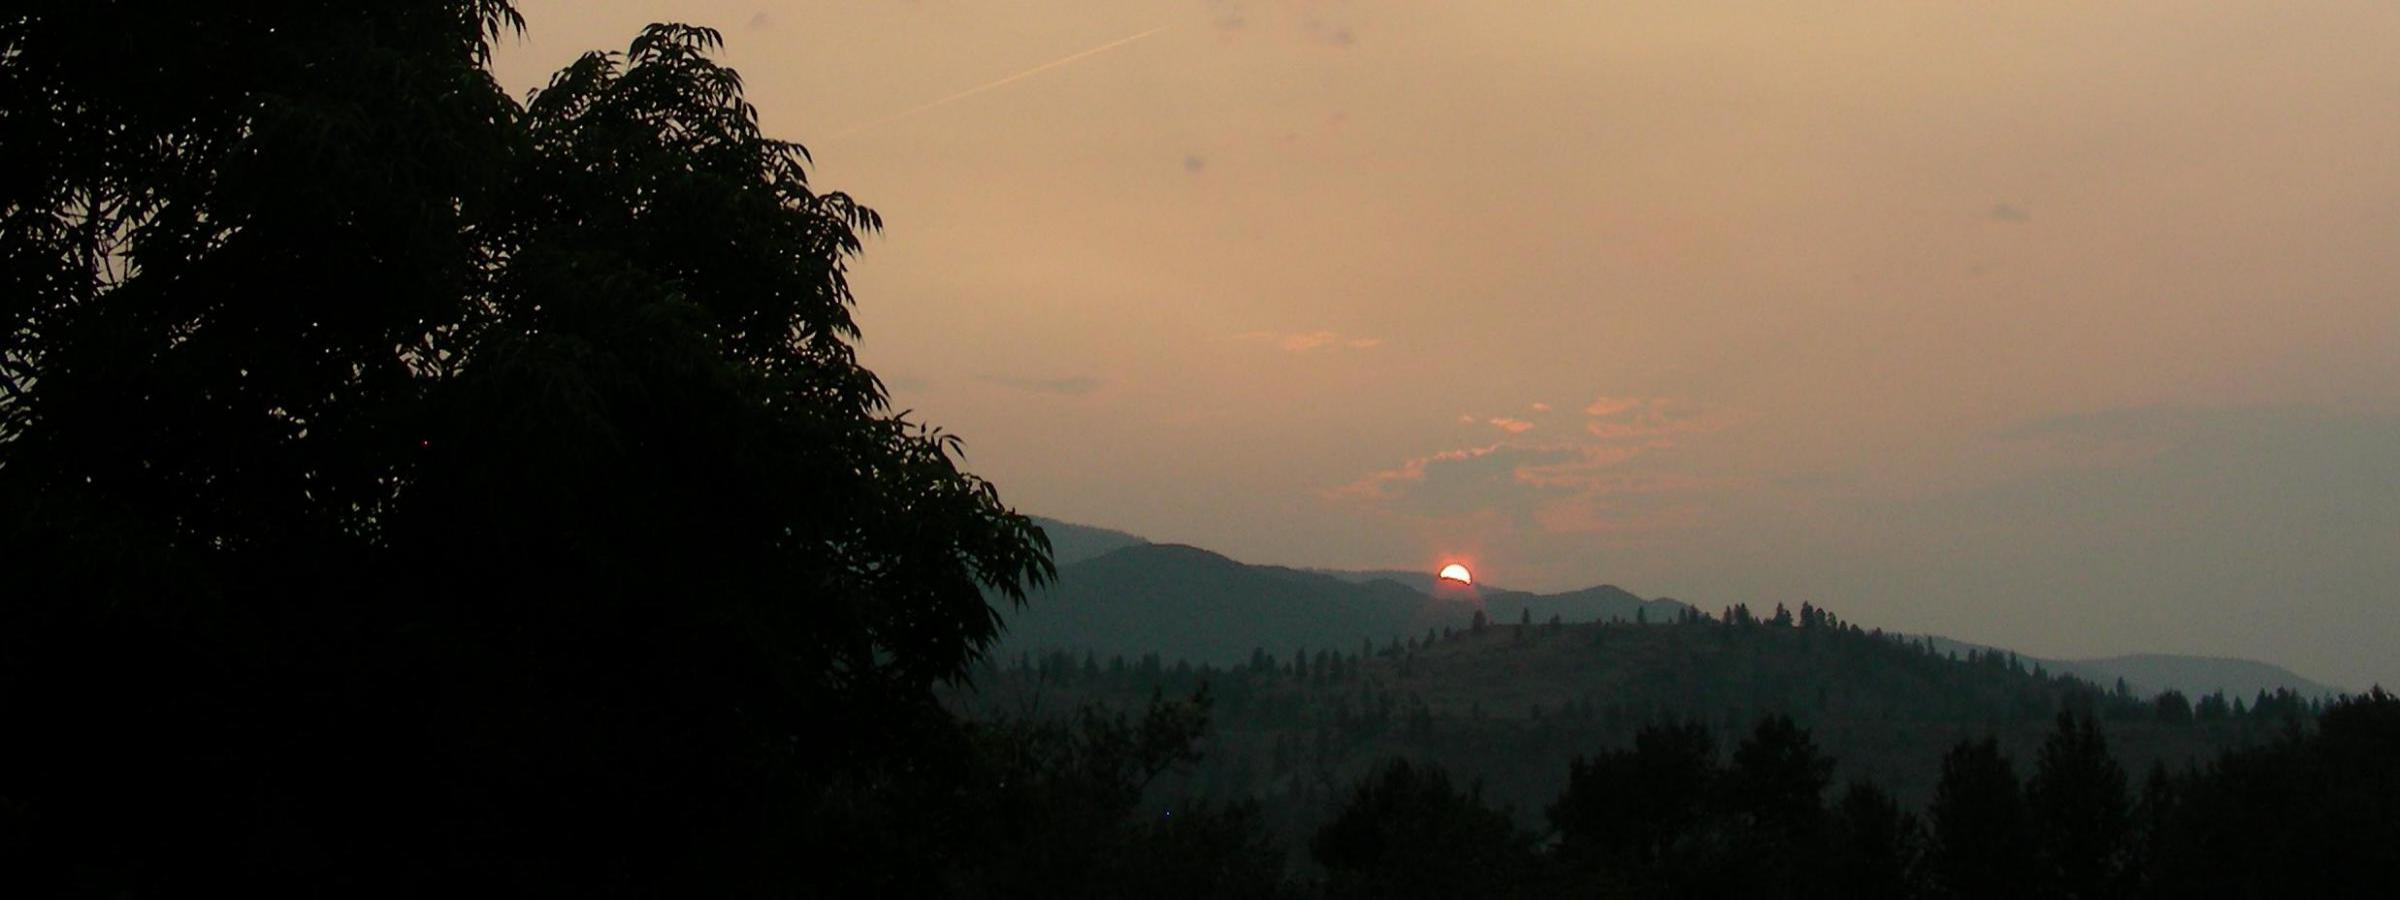 sunset-during-fire-season-2-2400